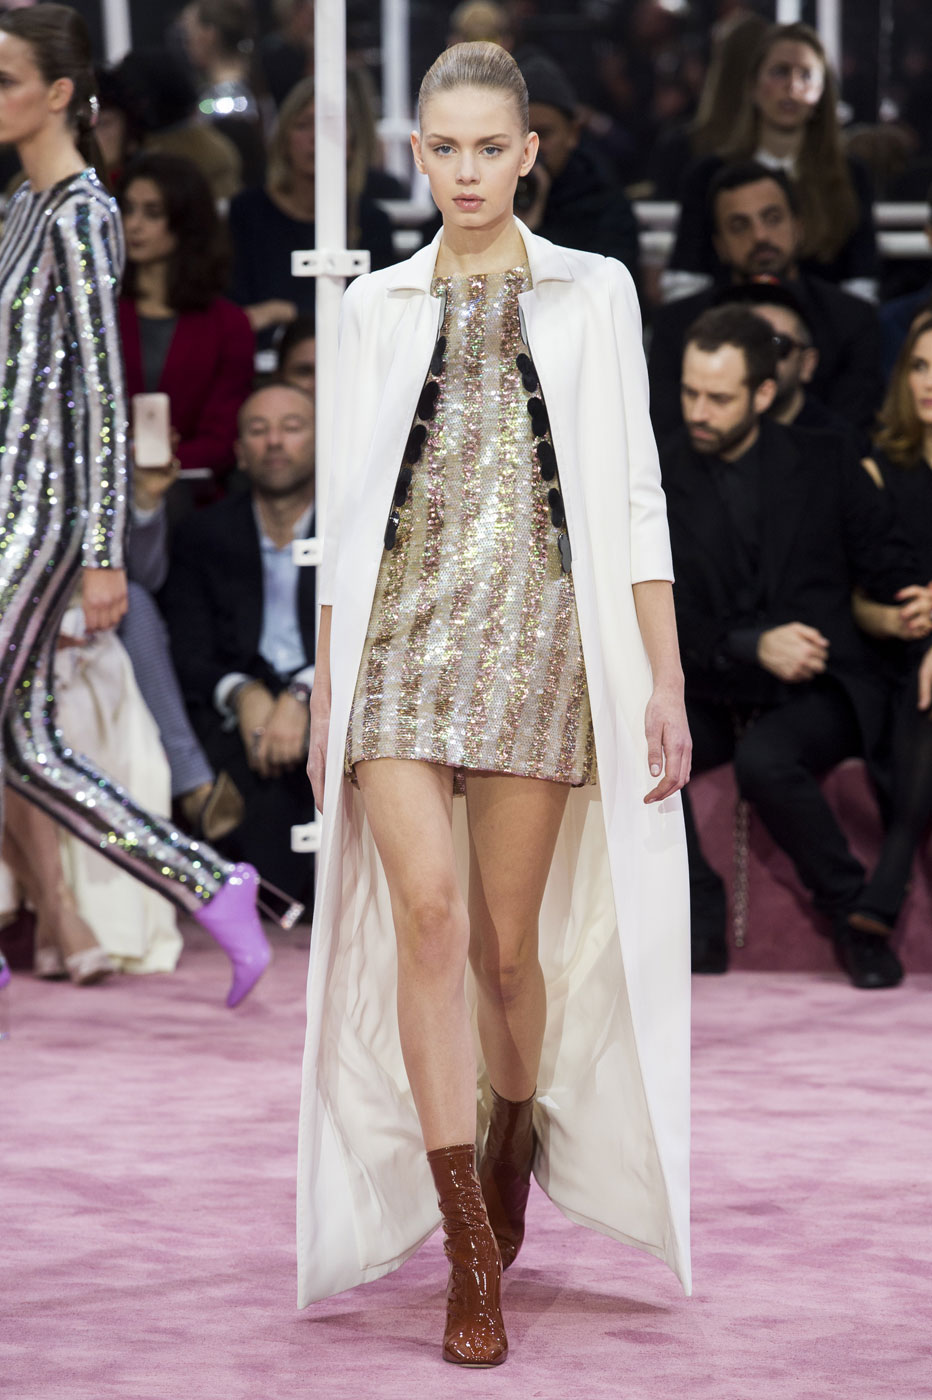 Christian-Dior-fashion-runway-show-haute-couture-paris-spring-summer-2015-the-impression-088